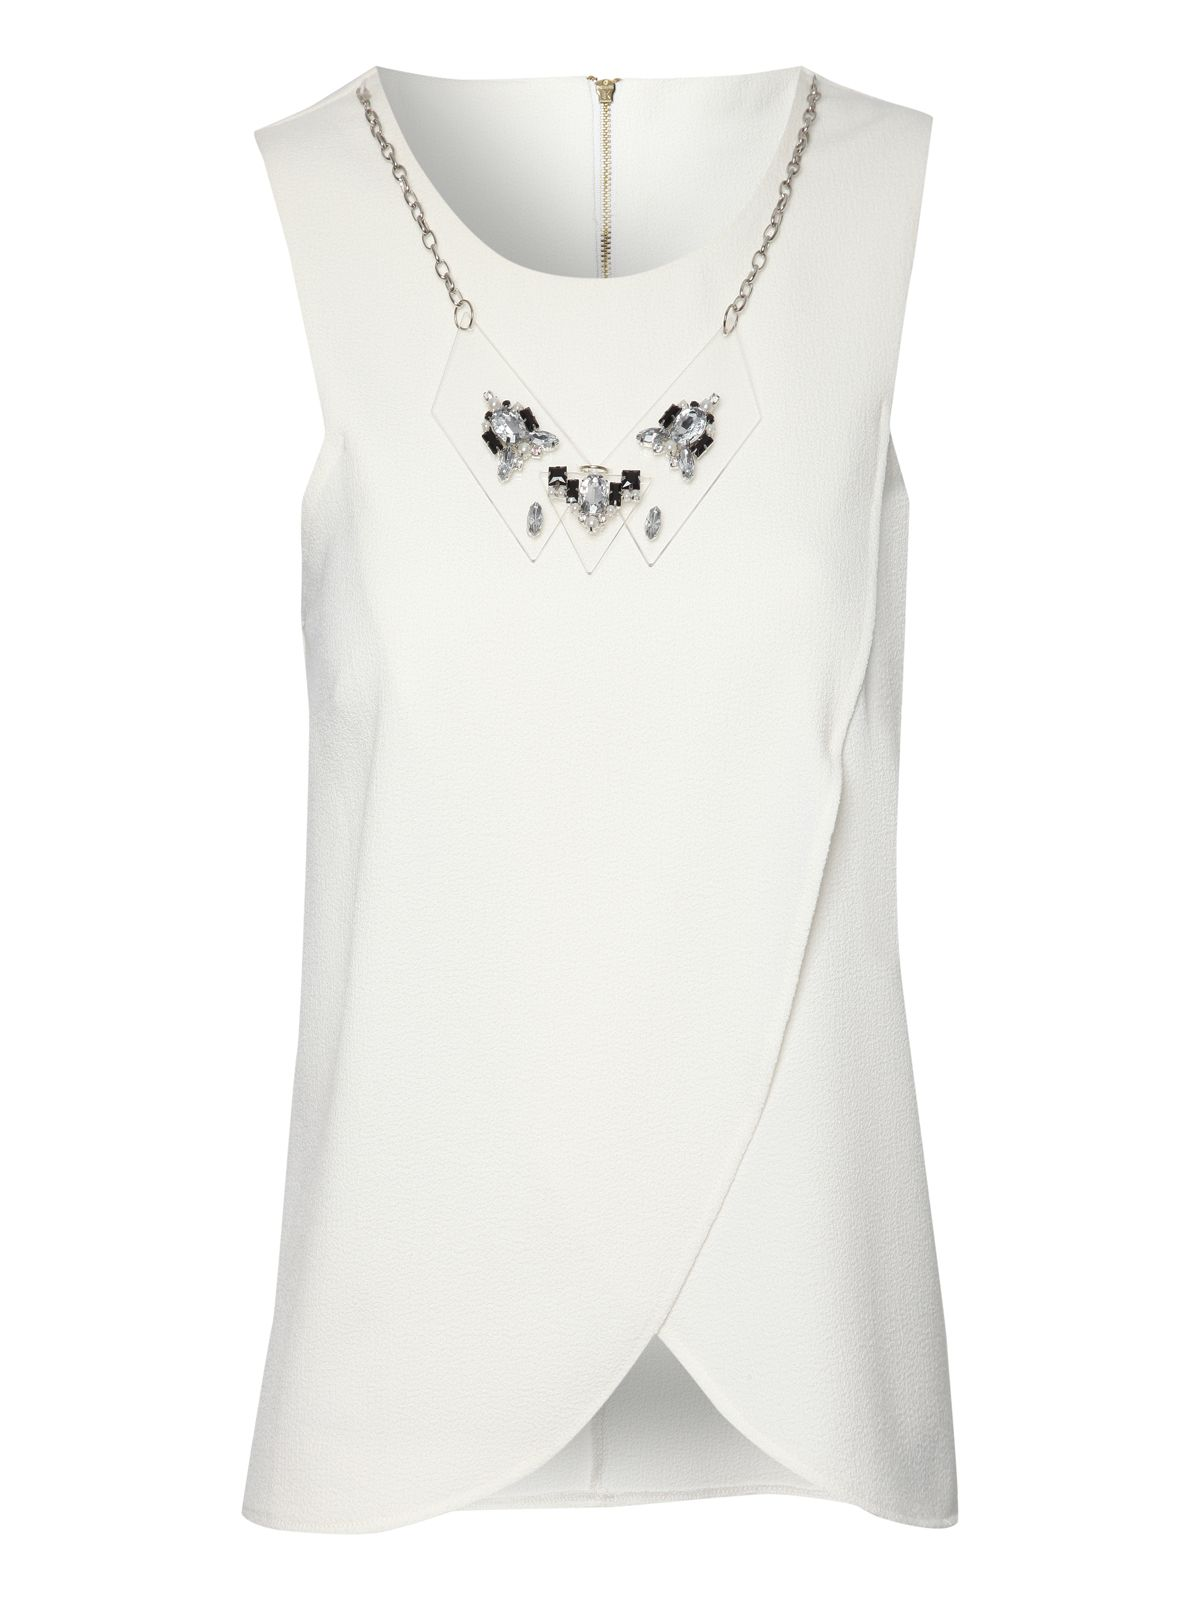 Tulip wrap sleeveless top with necklace